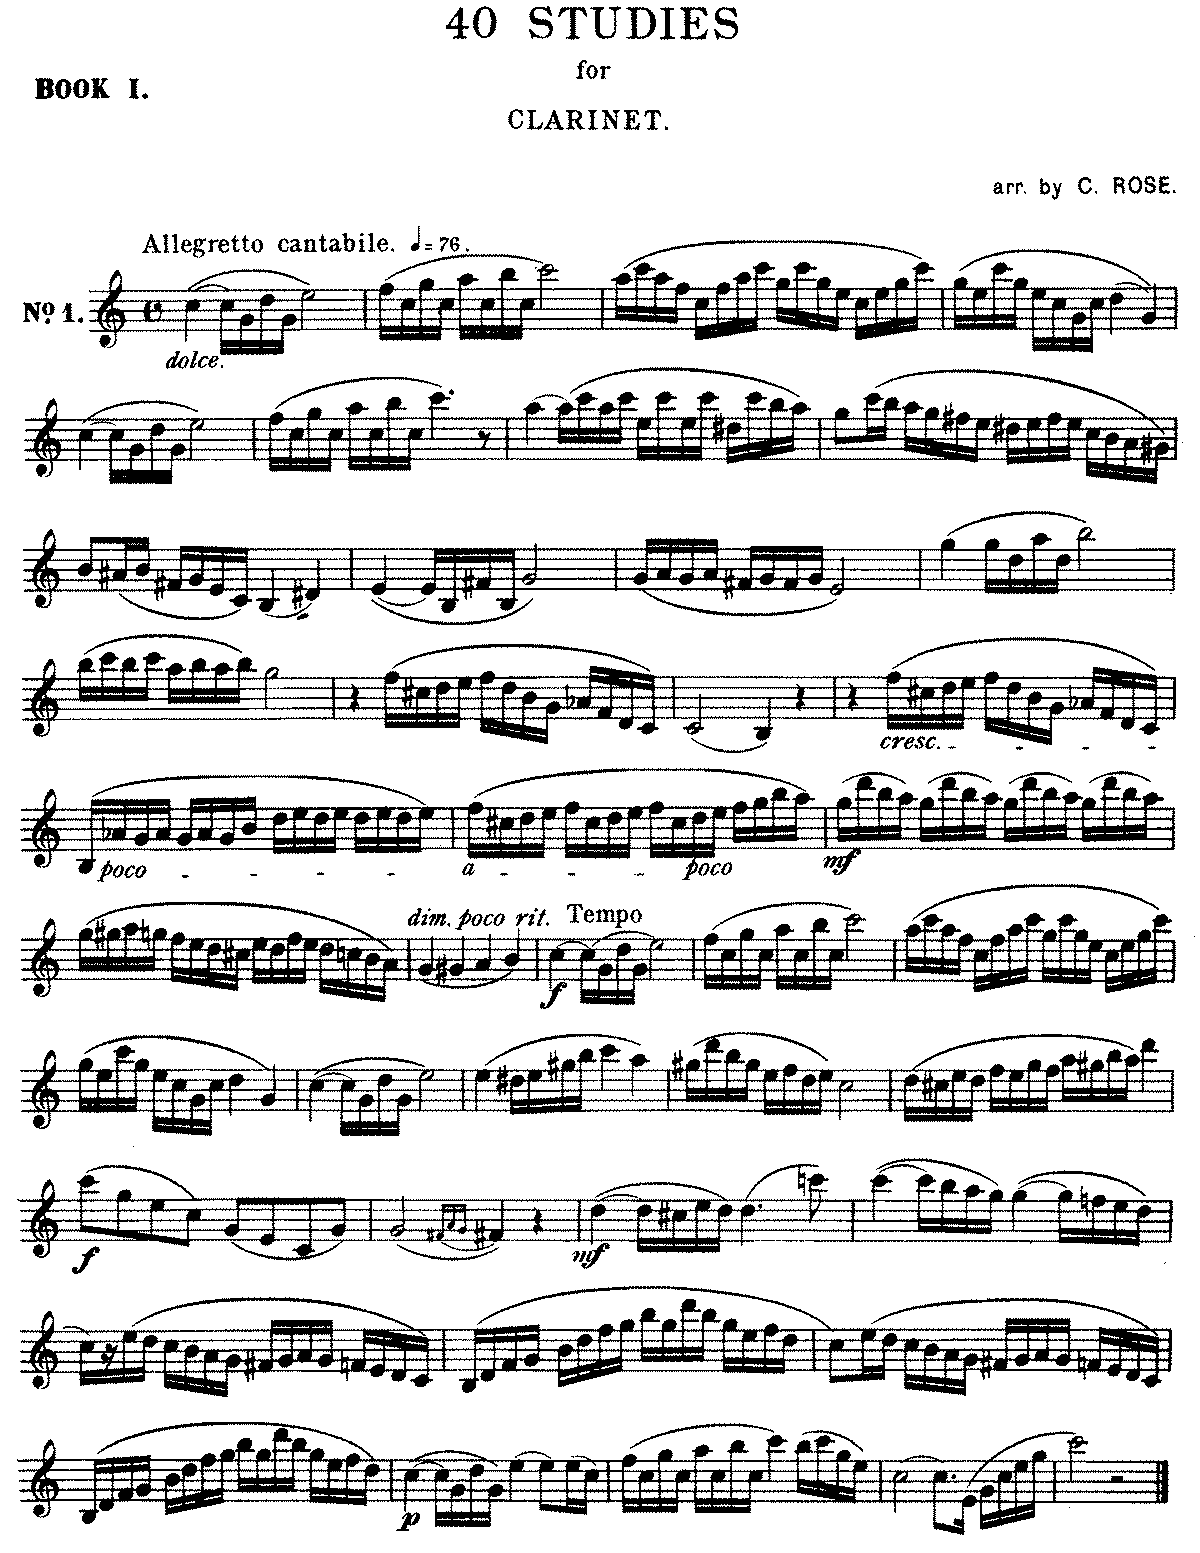 Clarinet Scales Sheet Music